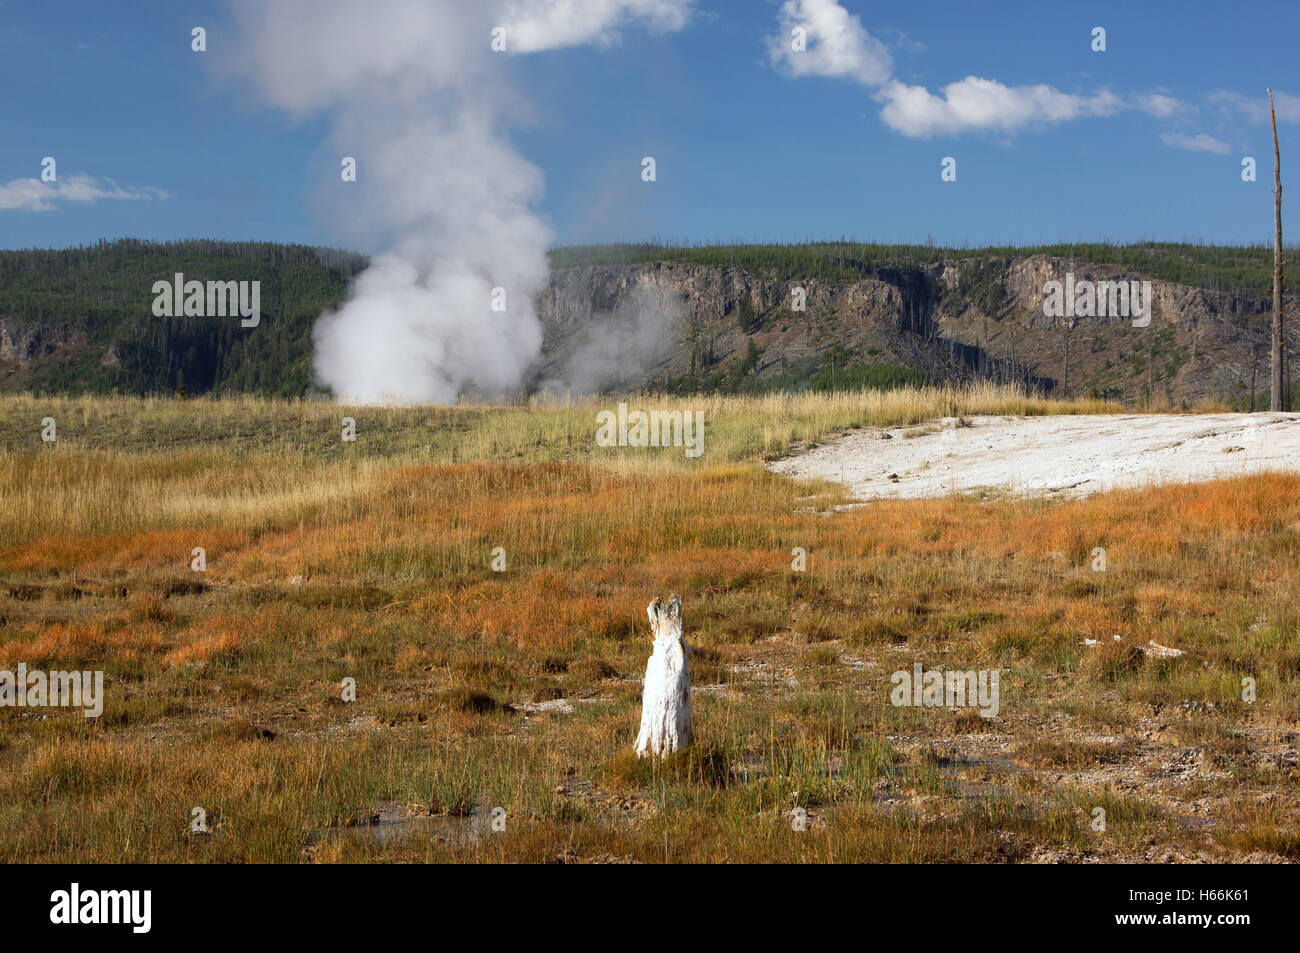 Yellowstone National Park Is A National Park Located Primarily In - Us national parks yellowstone